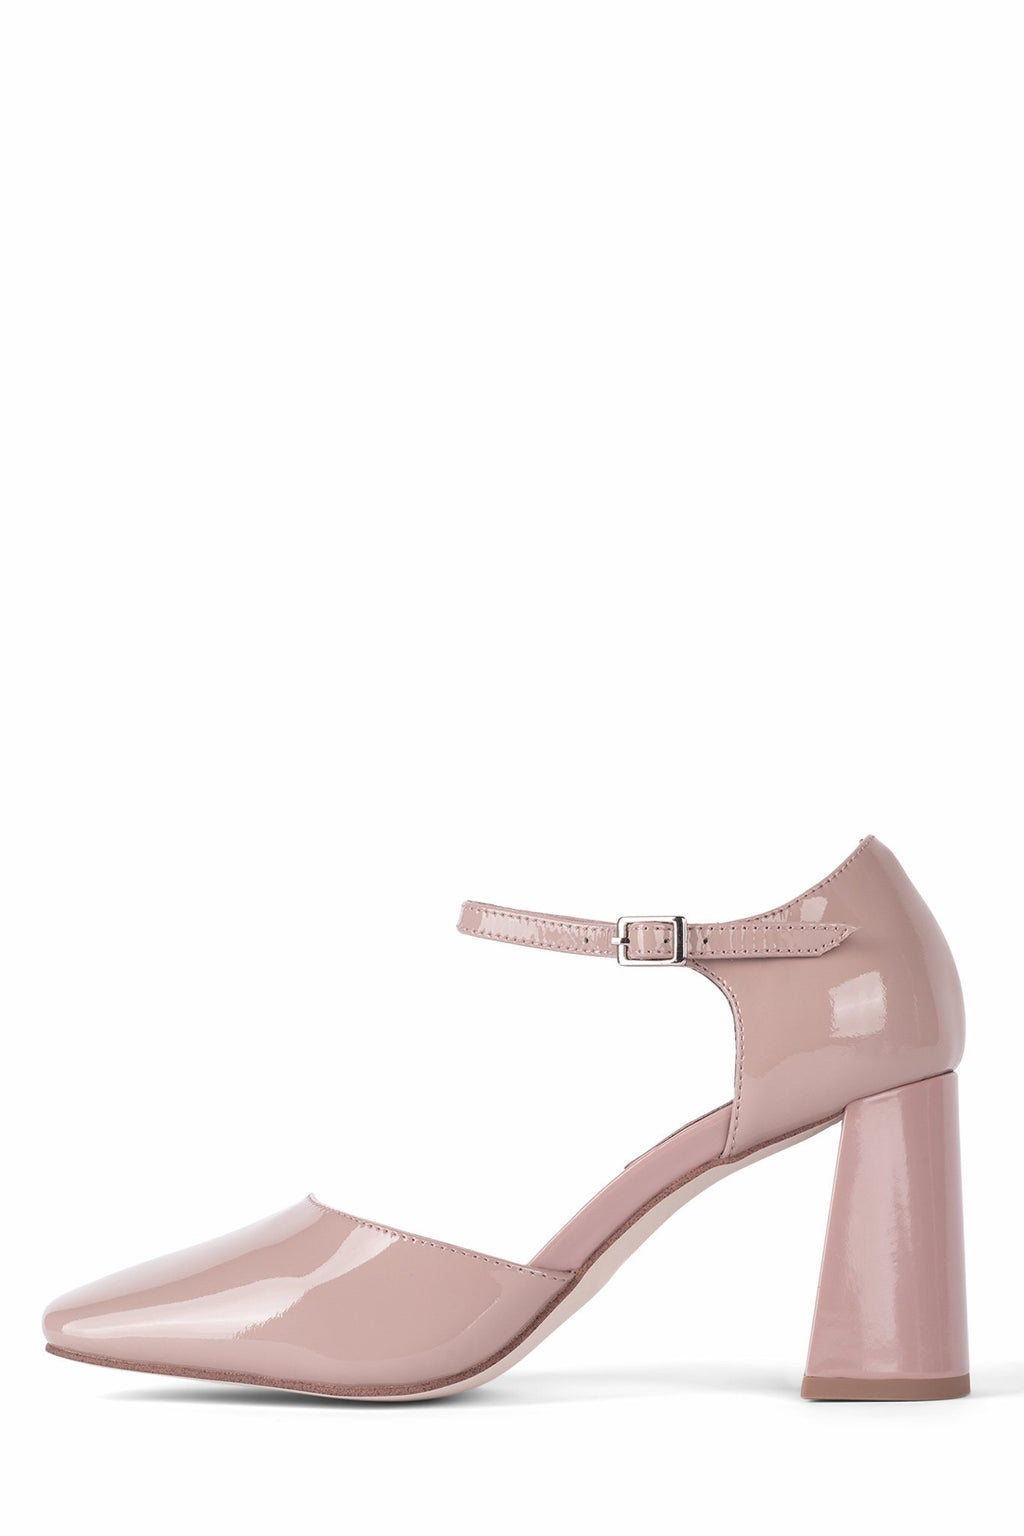 BRUNCH YYH Dusty Pink Patent 6